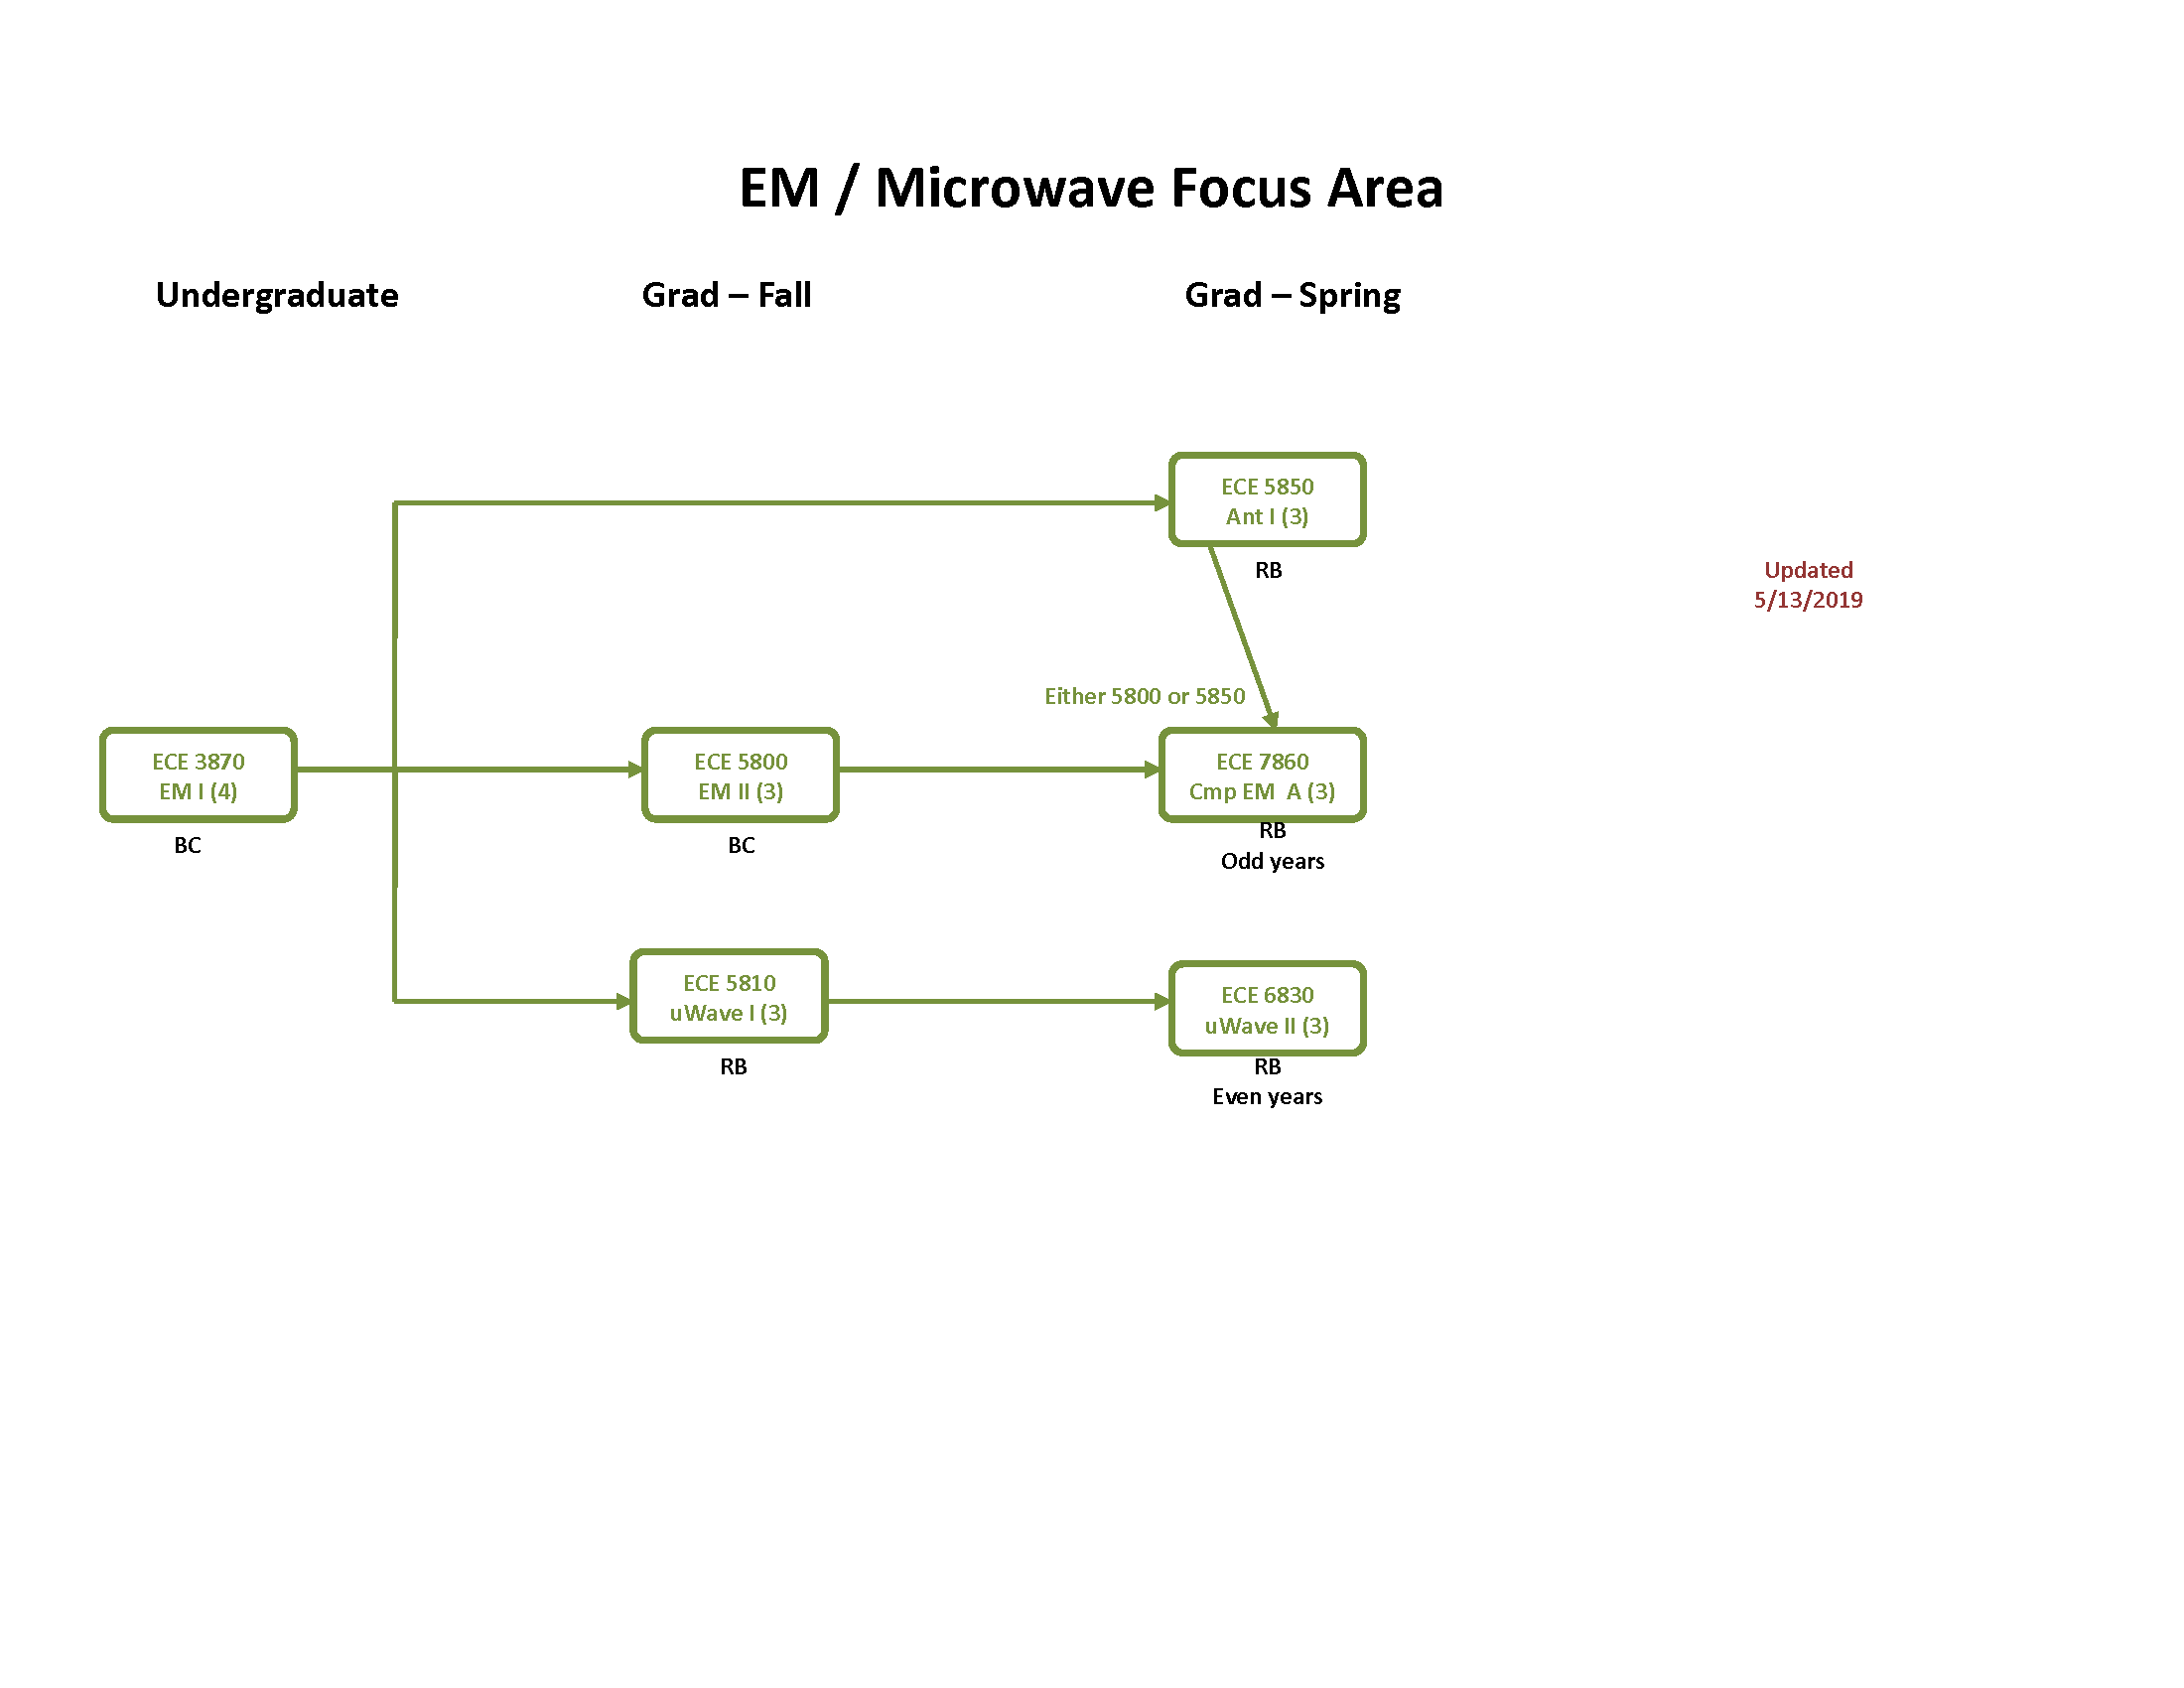 Diagram of EM/ Microwave Focus Area